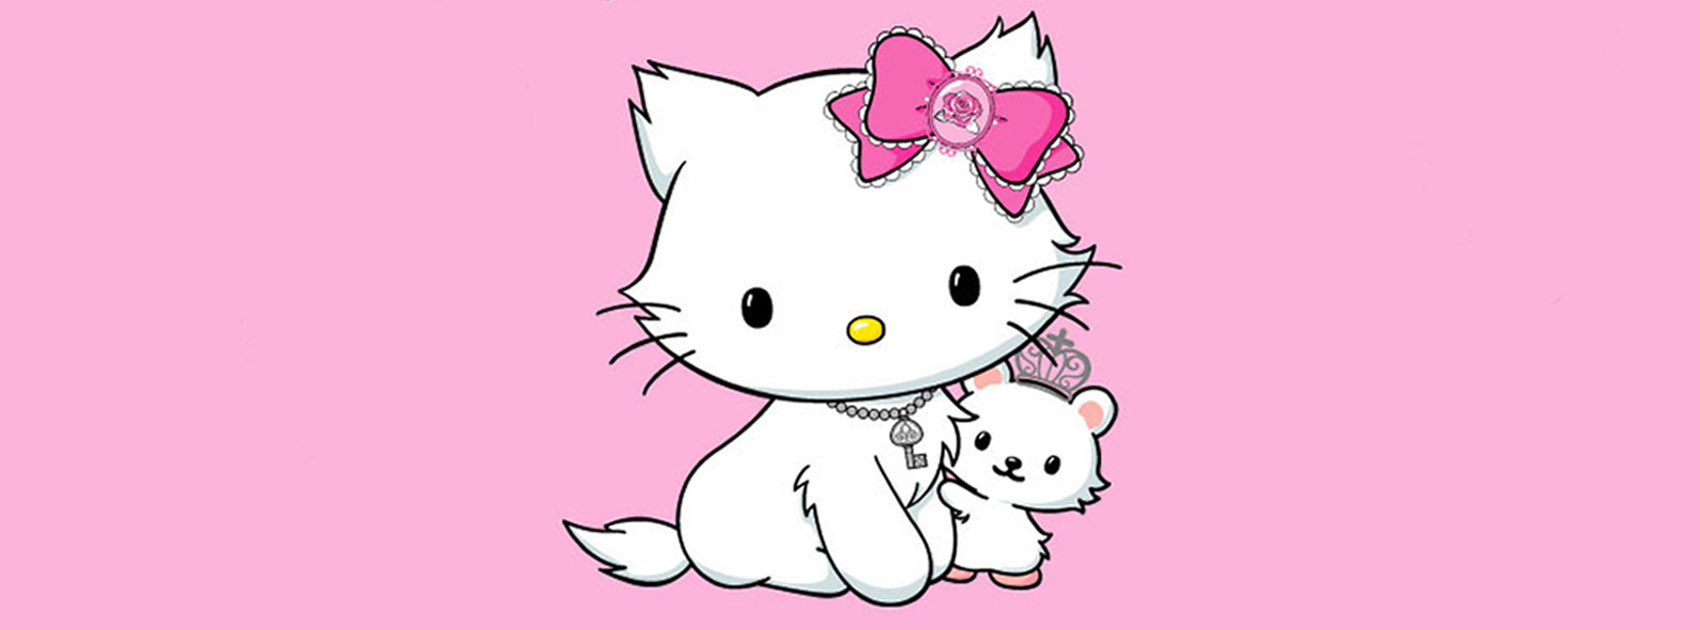 Cute Wallpapers 400 Pixels Wide 84 Hello Kitty And Sanrio Friends Facebook Timeline Cover